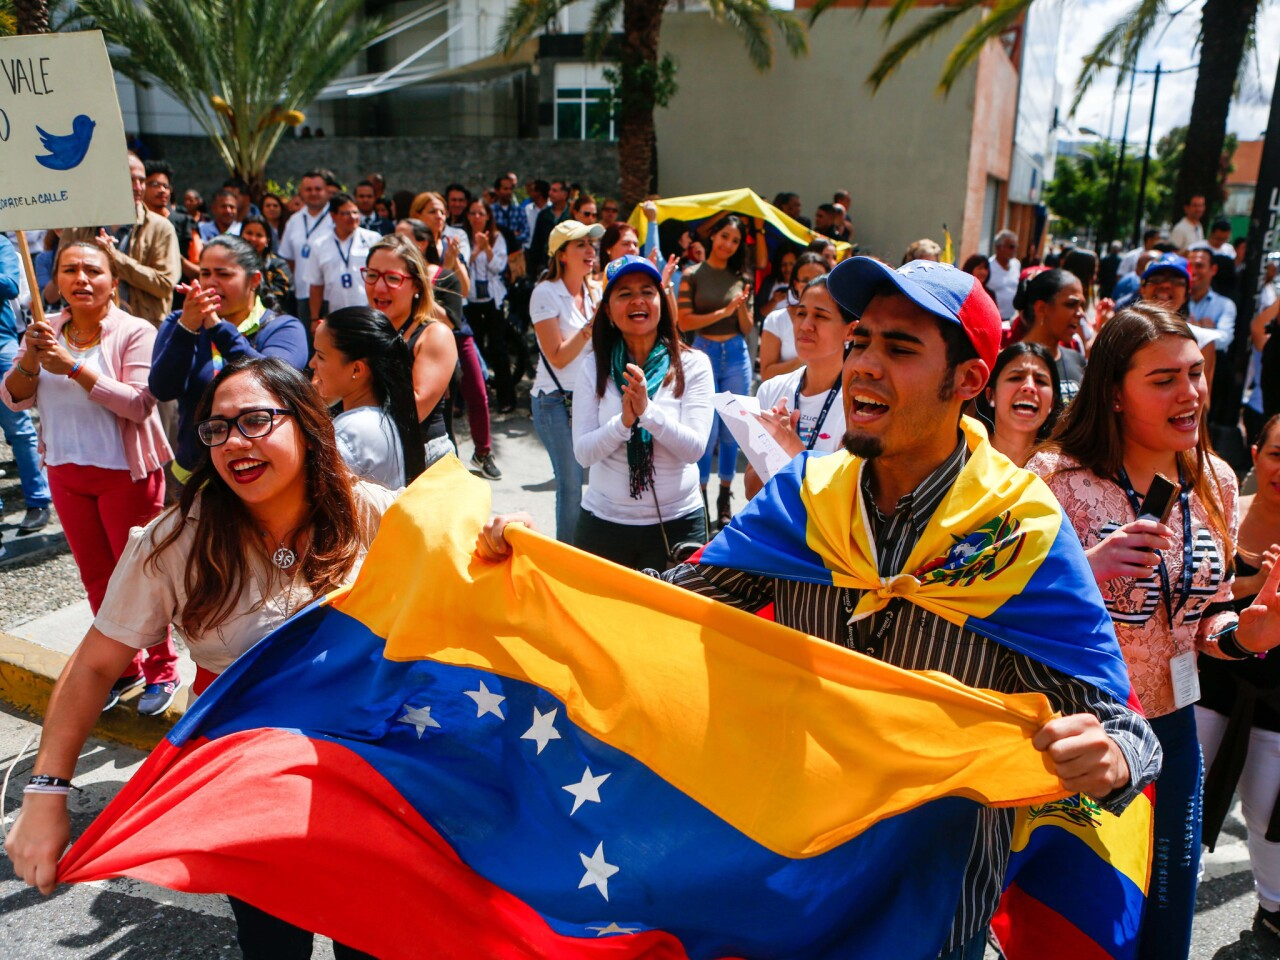 Venezuelan opposition protesters participate in a demonstration to demand the end of the crisis and in support of the interim presidency of Juan Guaido, in Caracas.